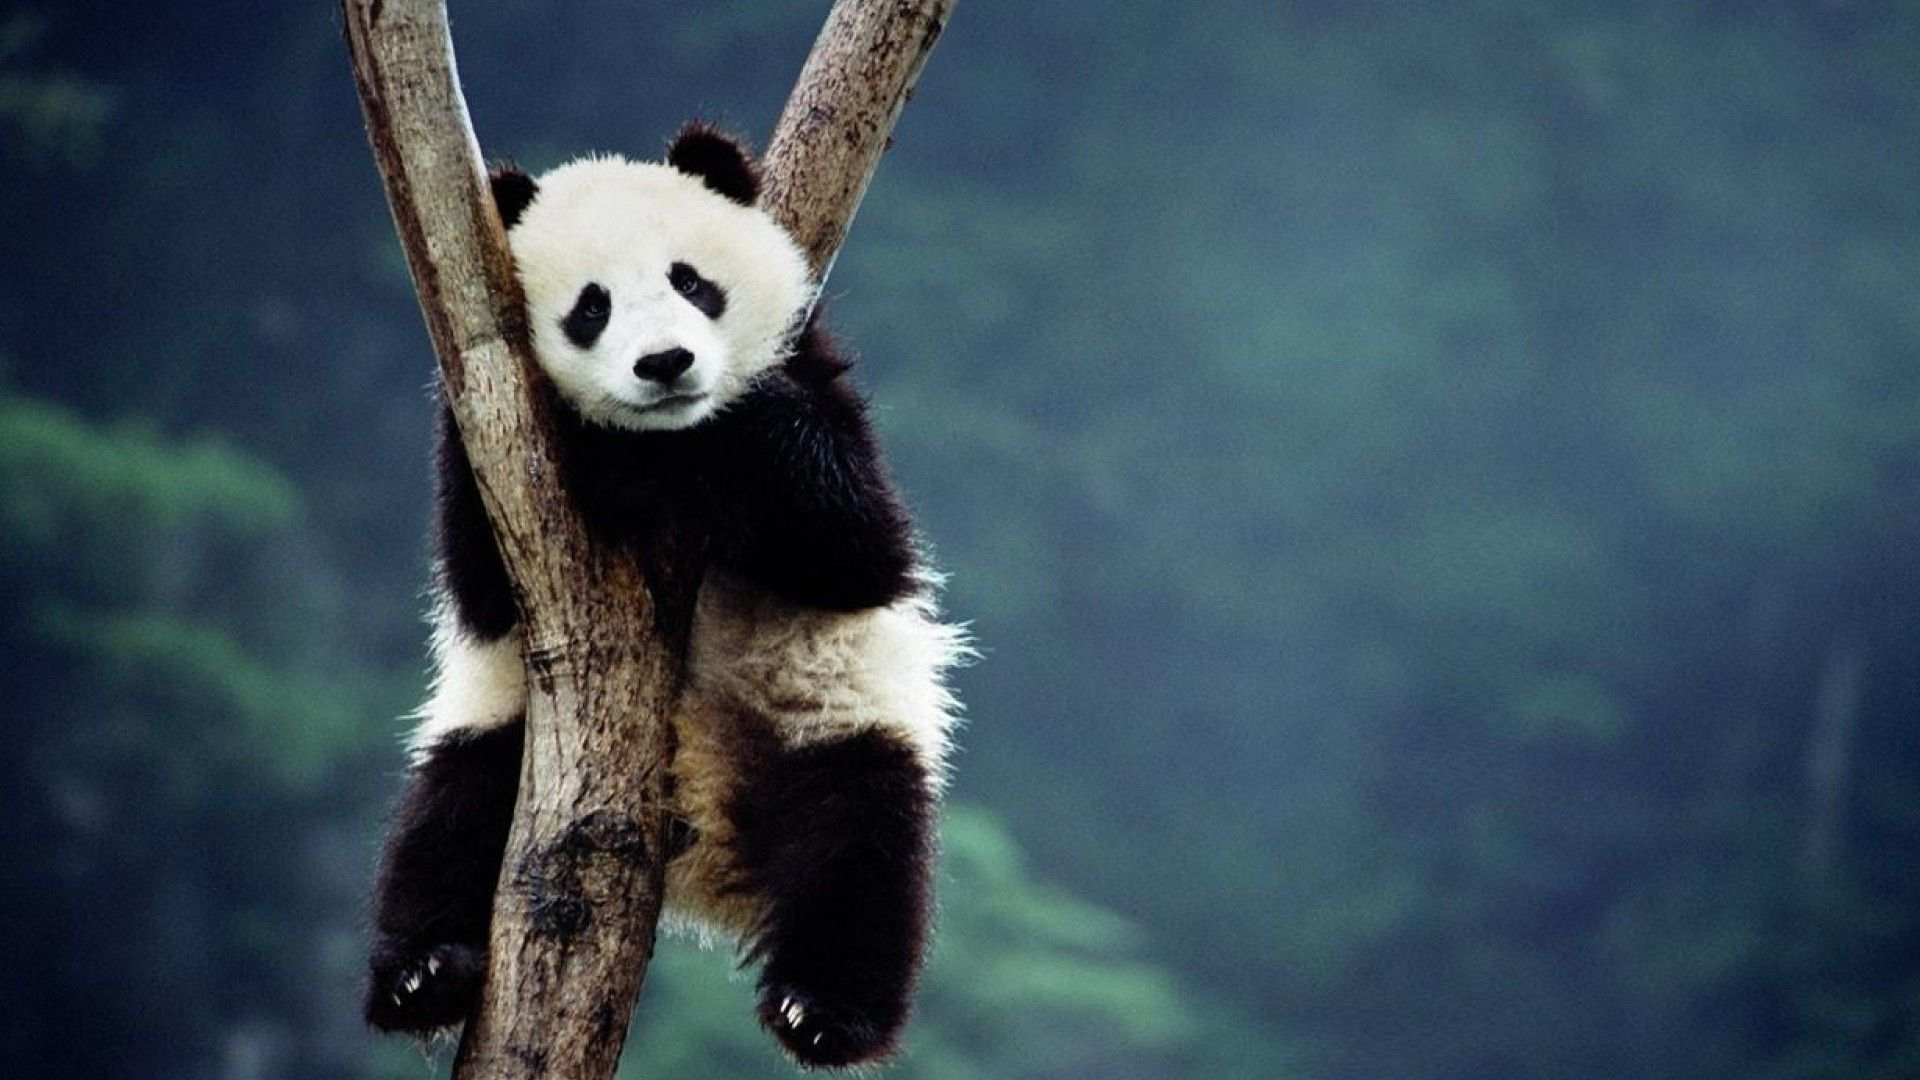 Best Free Live Wallpapers Iphone X Cute Panda Pictures Wallpaper Hd 2018 Wallpapers Hd